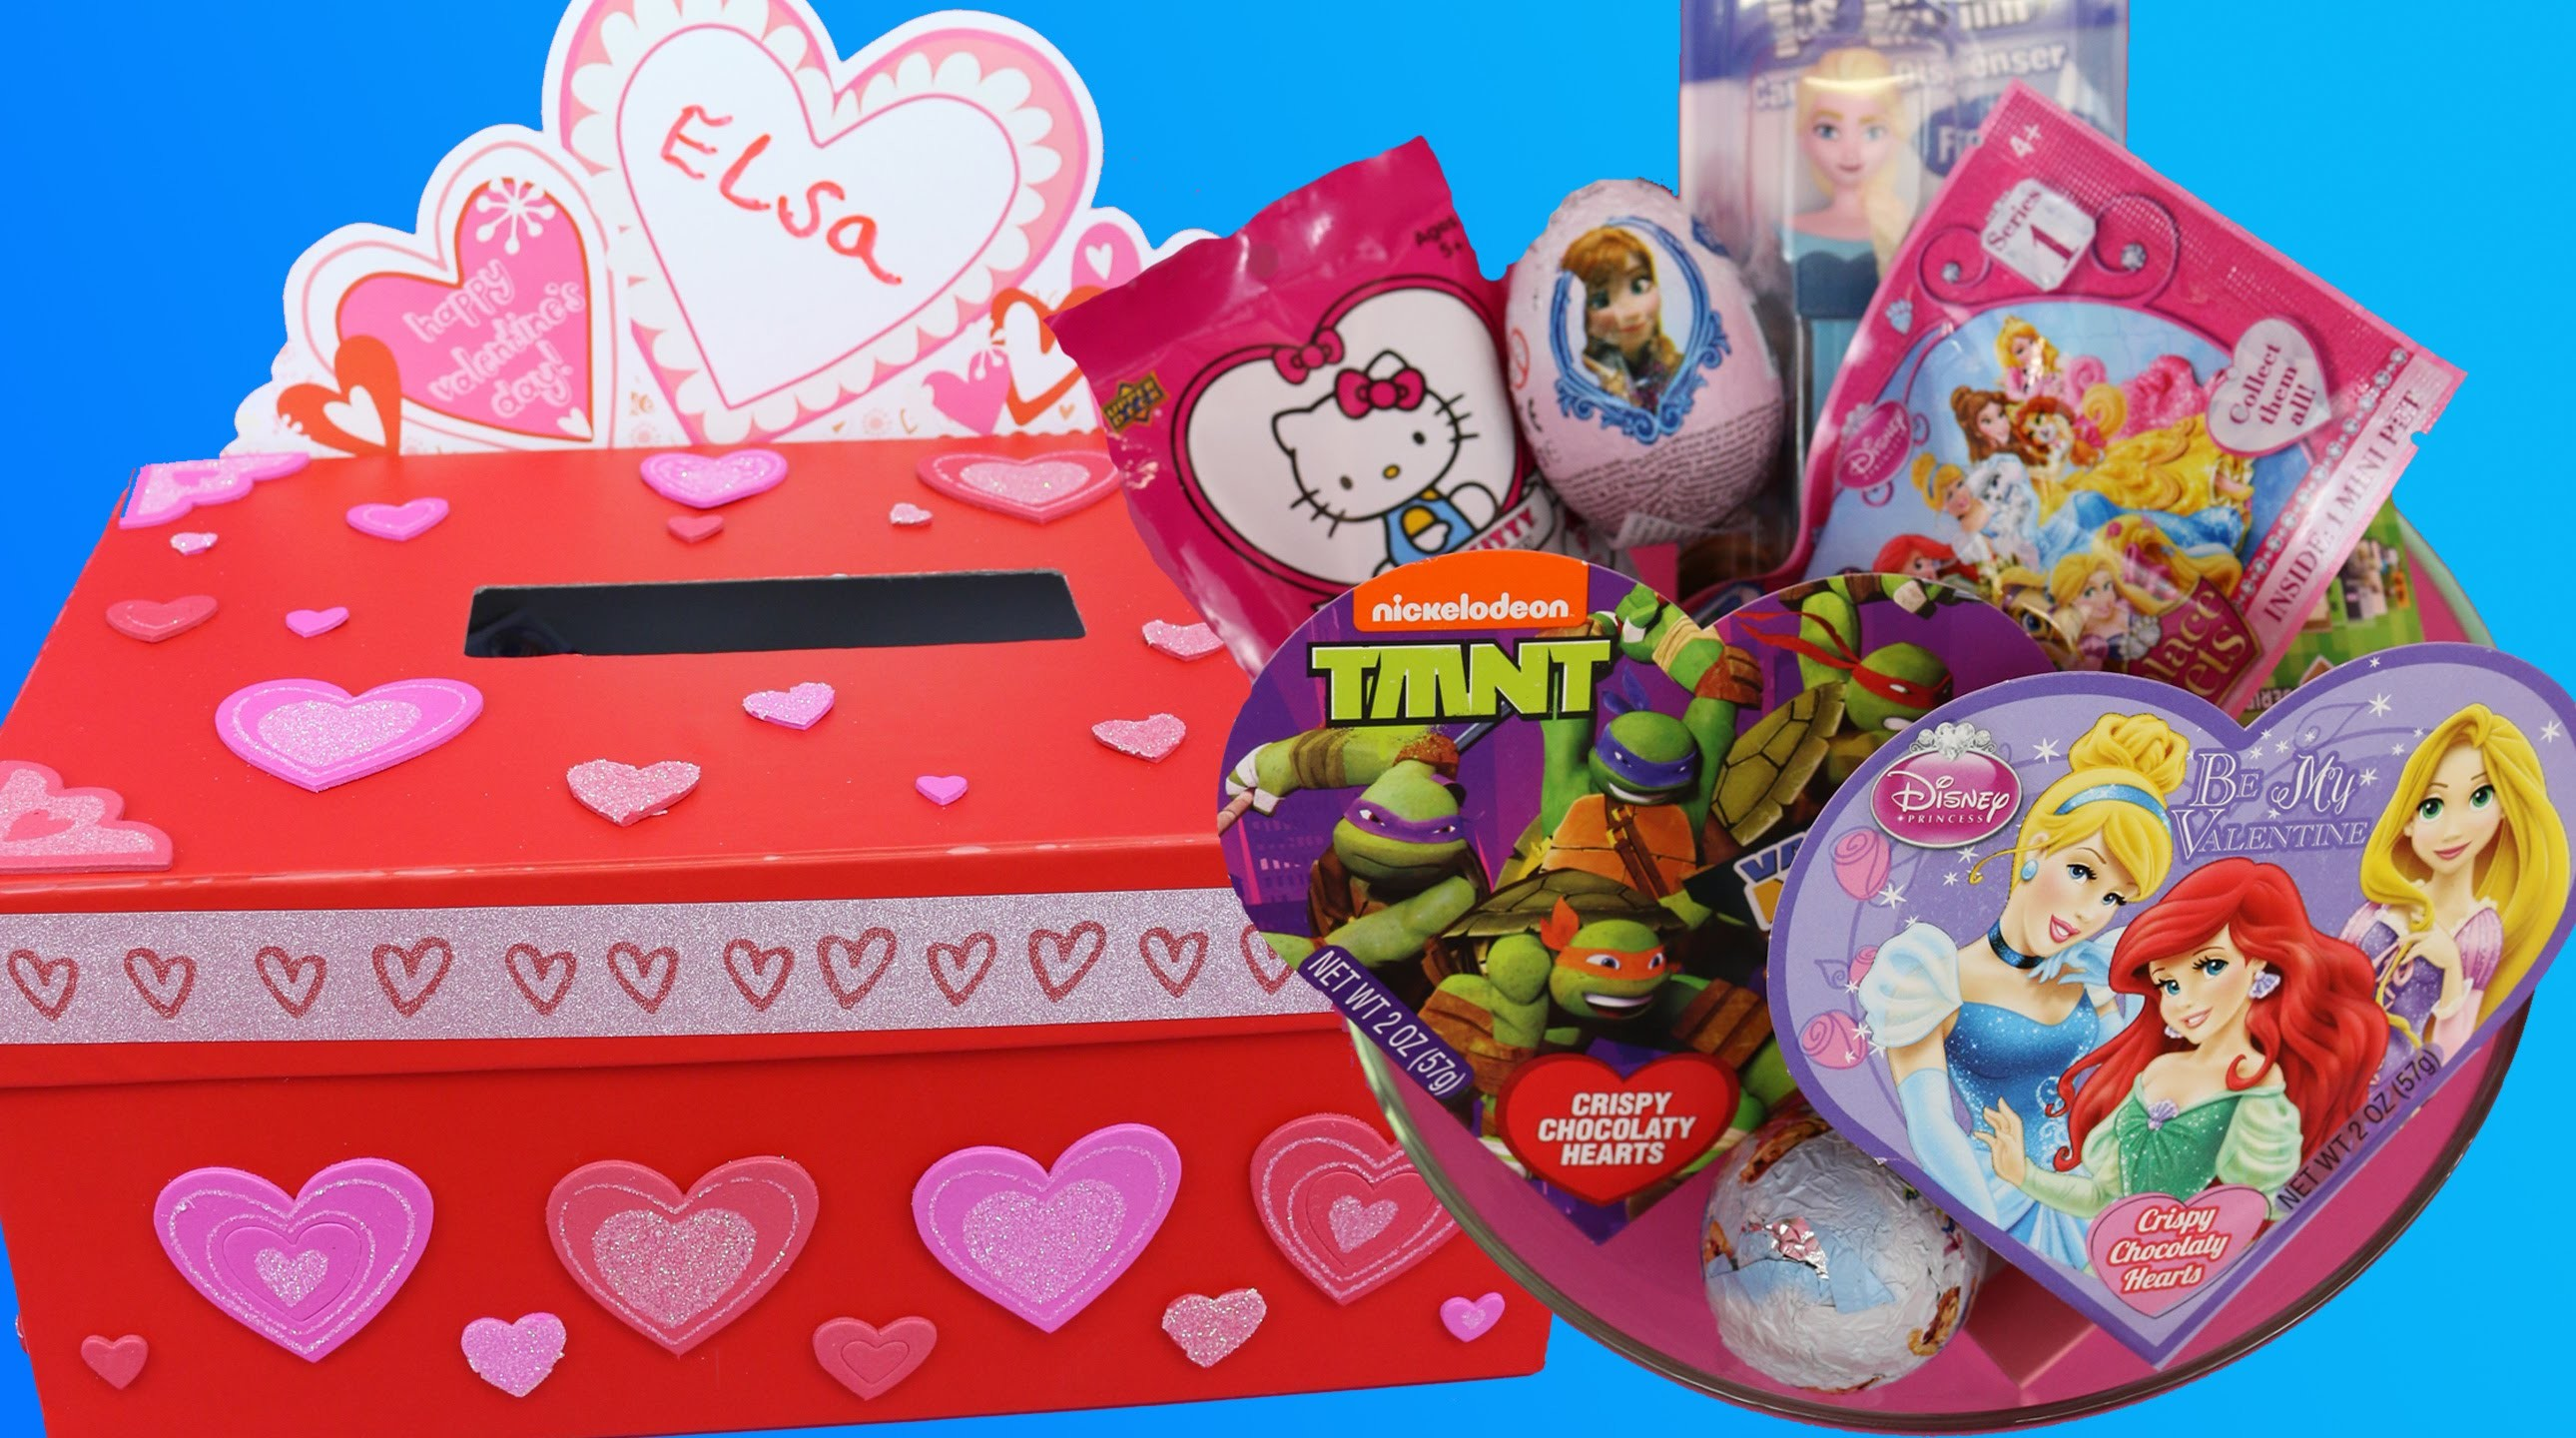 VALENTINE'S DAY Surprise Toys ❤ DIY Valentine Mail Box ❤ Kinder Eggs Blind Bags Frozen Disney Egg